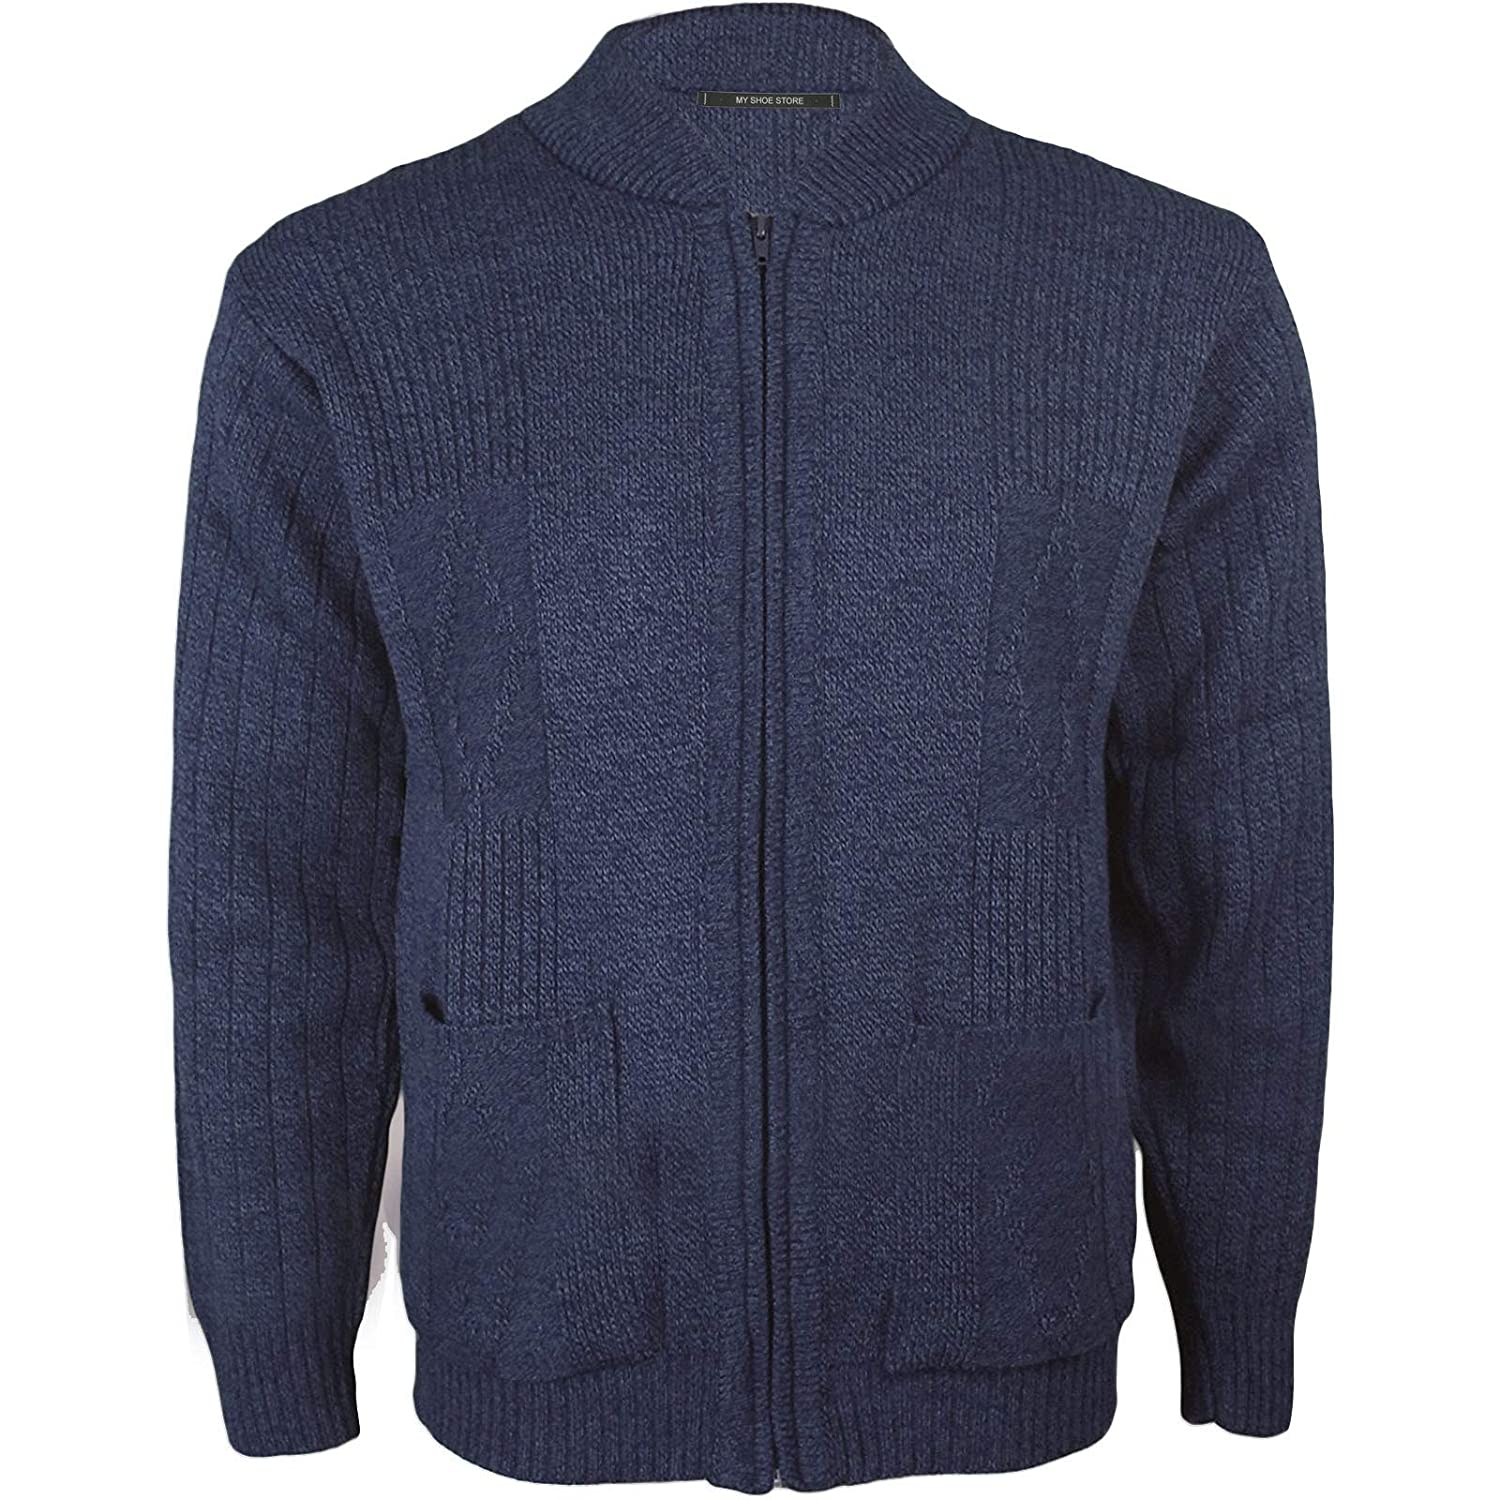 Mens Gents Knitted Vintage Grandad Style Classic Zipper Plain Zip Up Cardigan